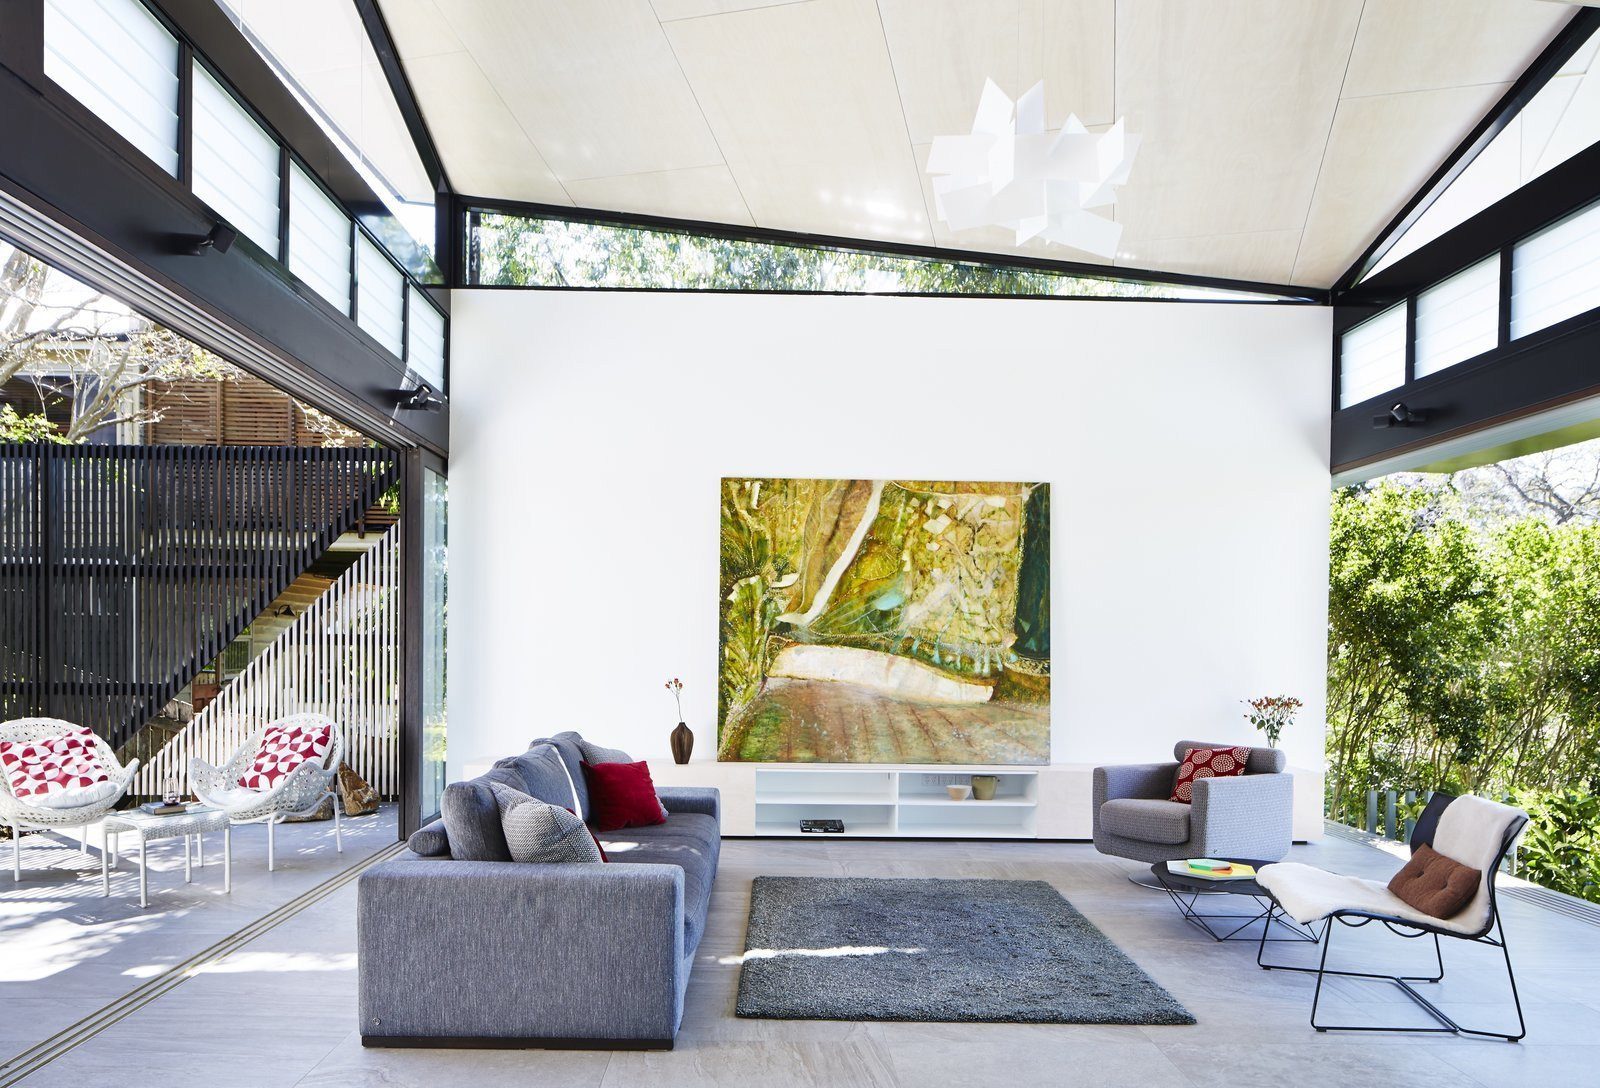 Living Room, Chair, Sofa, Storage, Bookcase, Shelves, Concrete Floor, Rug Floor, End Tables, and Pendant Lighting  Photo 4 of 12 in An Edgy Slatted Facade Conceals a Striking Indoor/Outdoor Home in Brisbane